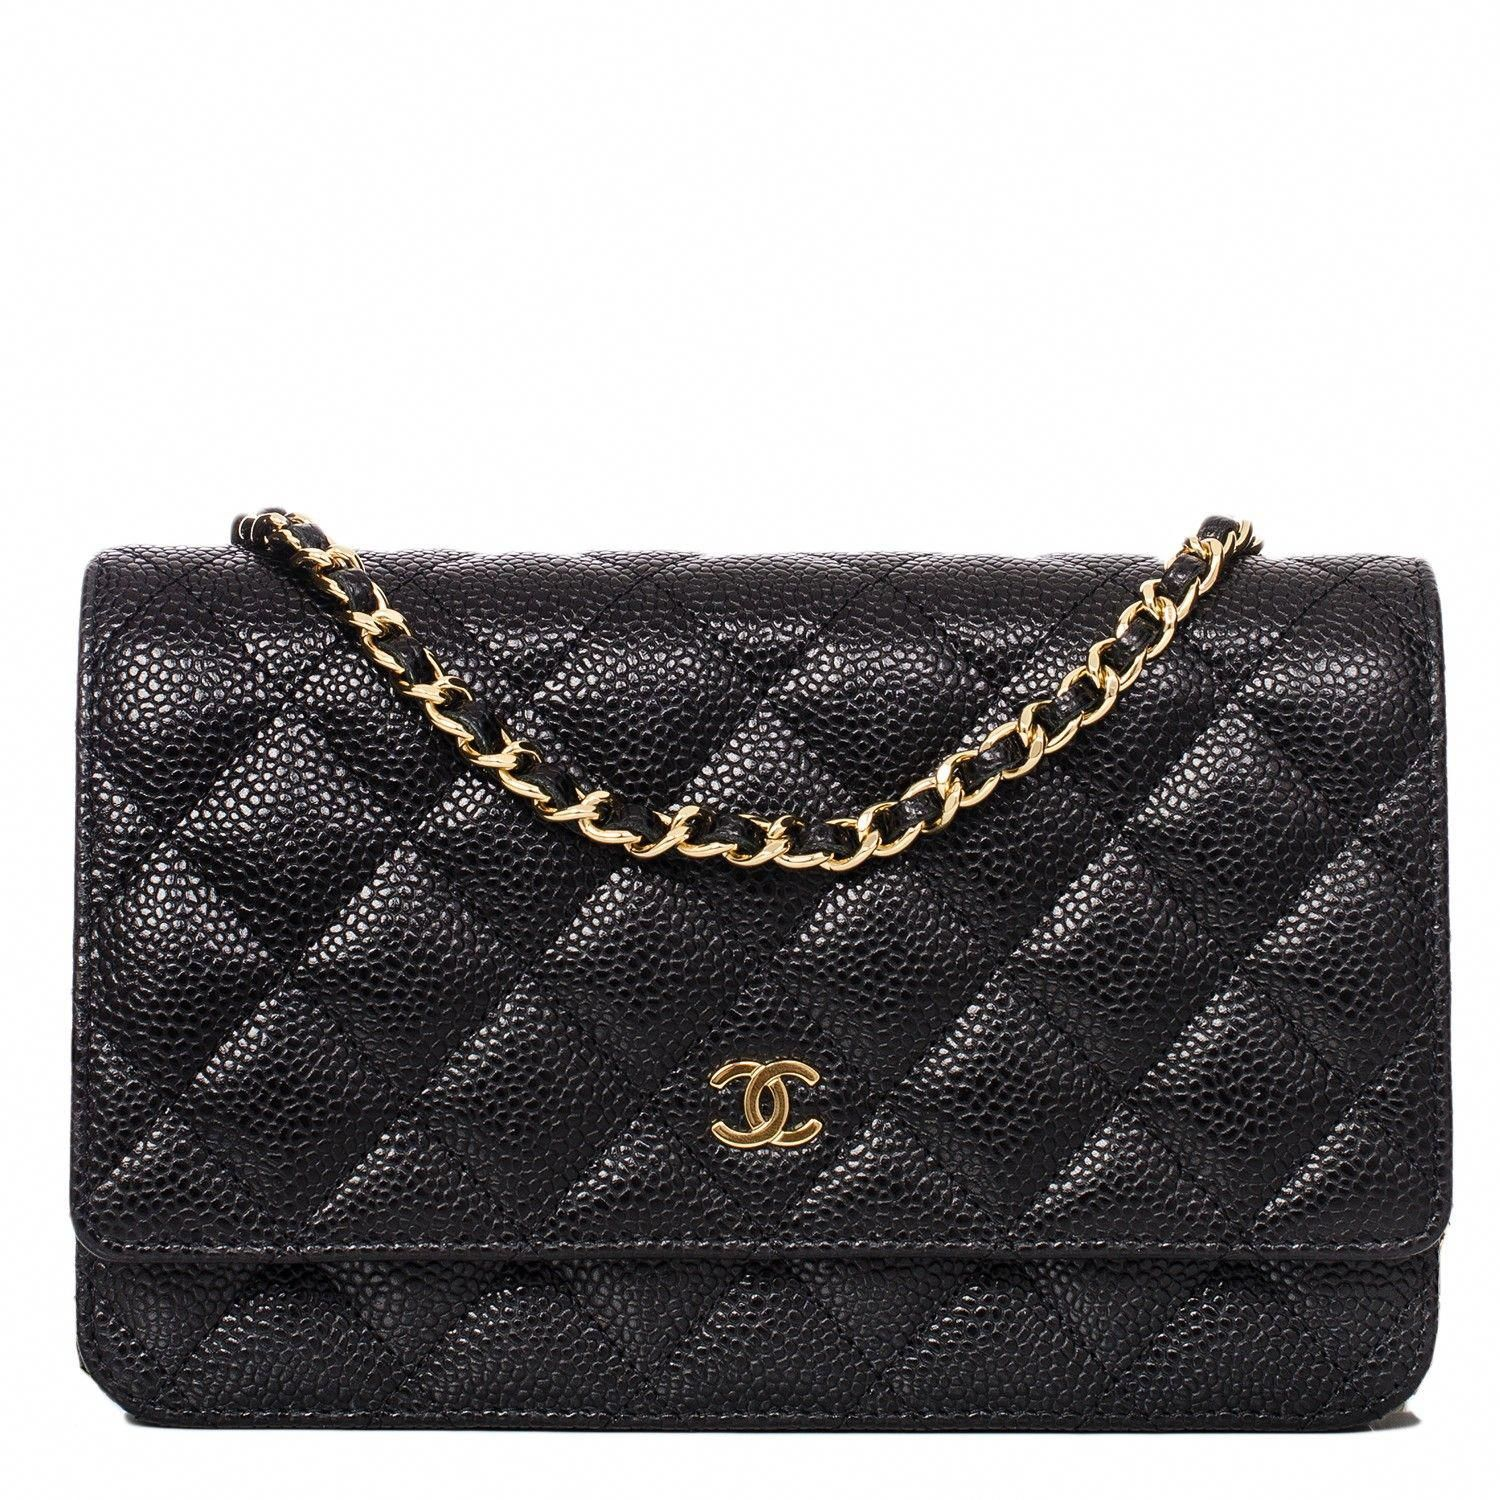 d107601adafc Chanel Black Classic Quilted Caviar Wallet On Chain (WOC) #Chanelhandbags